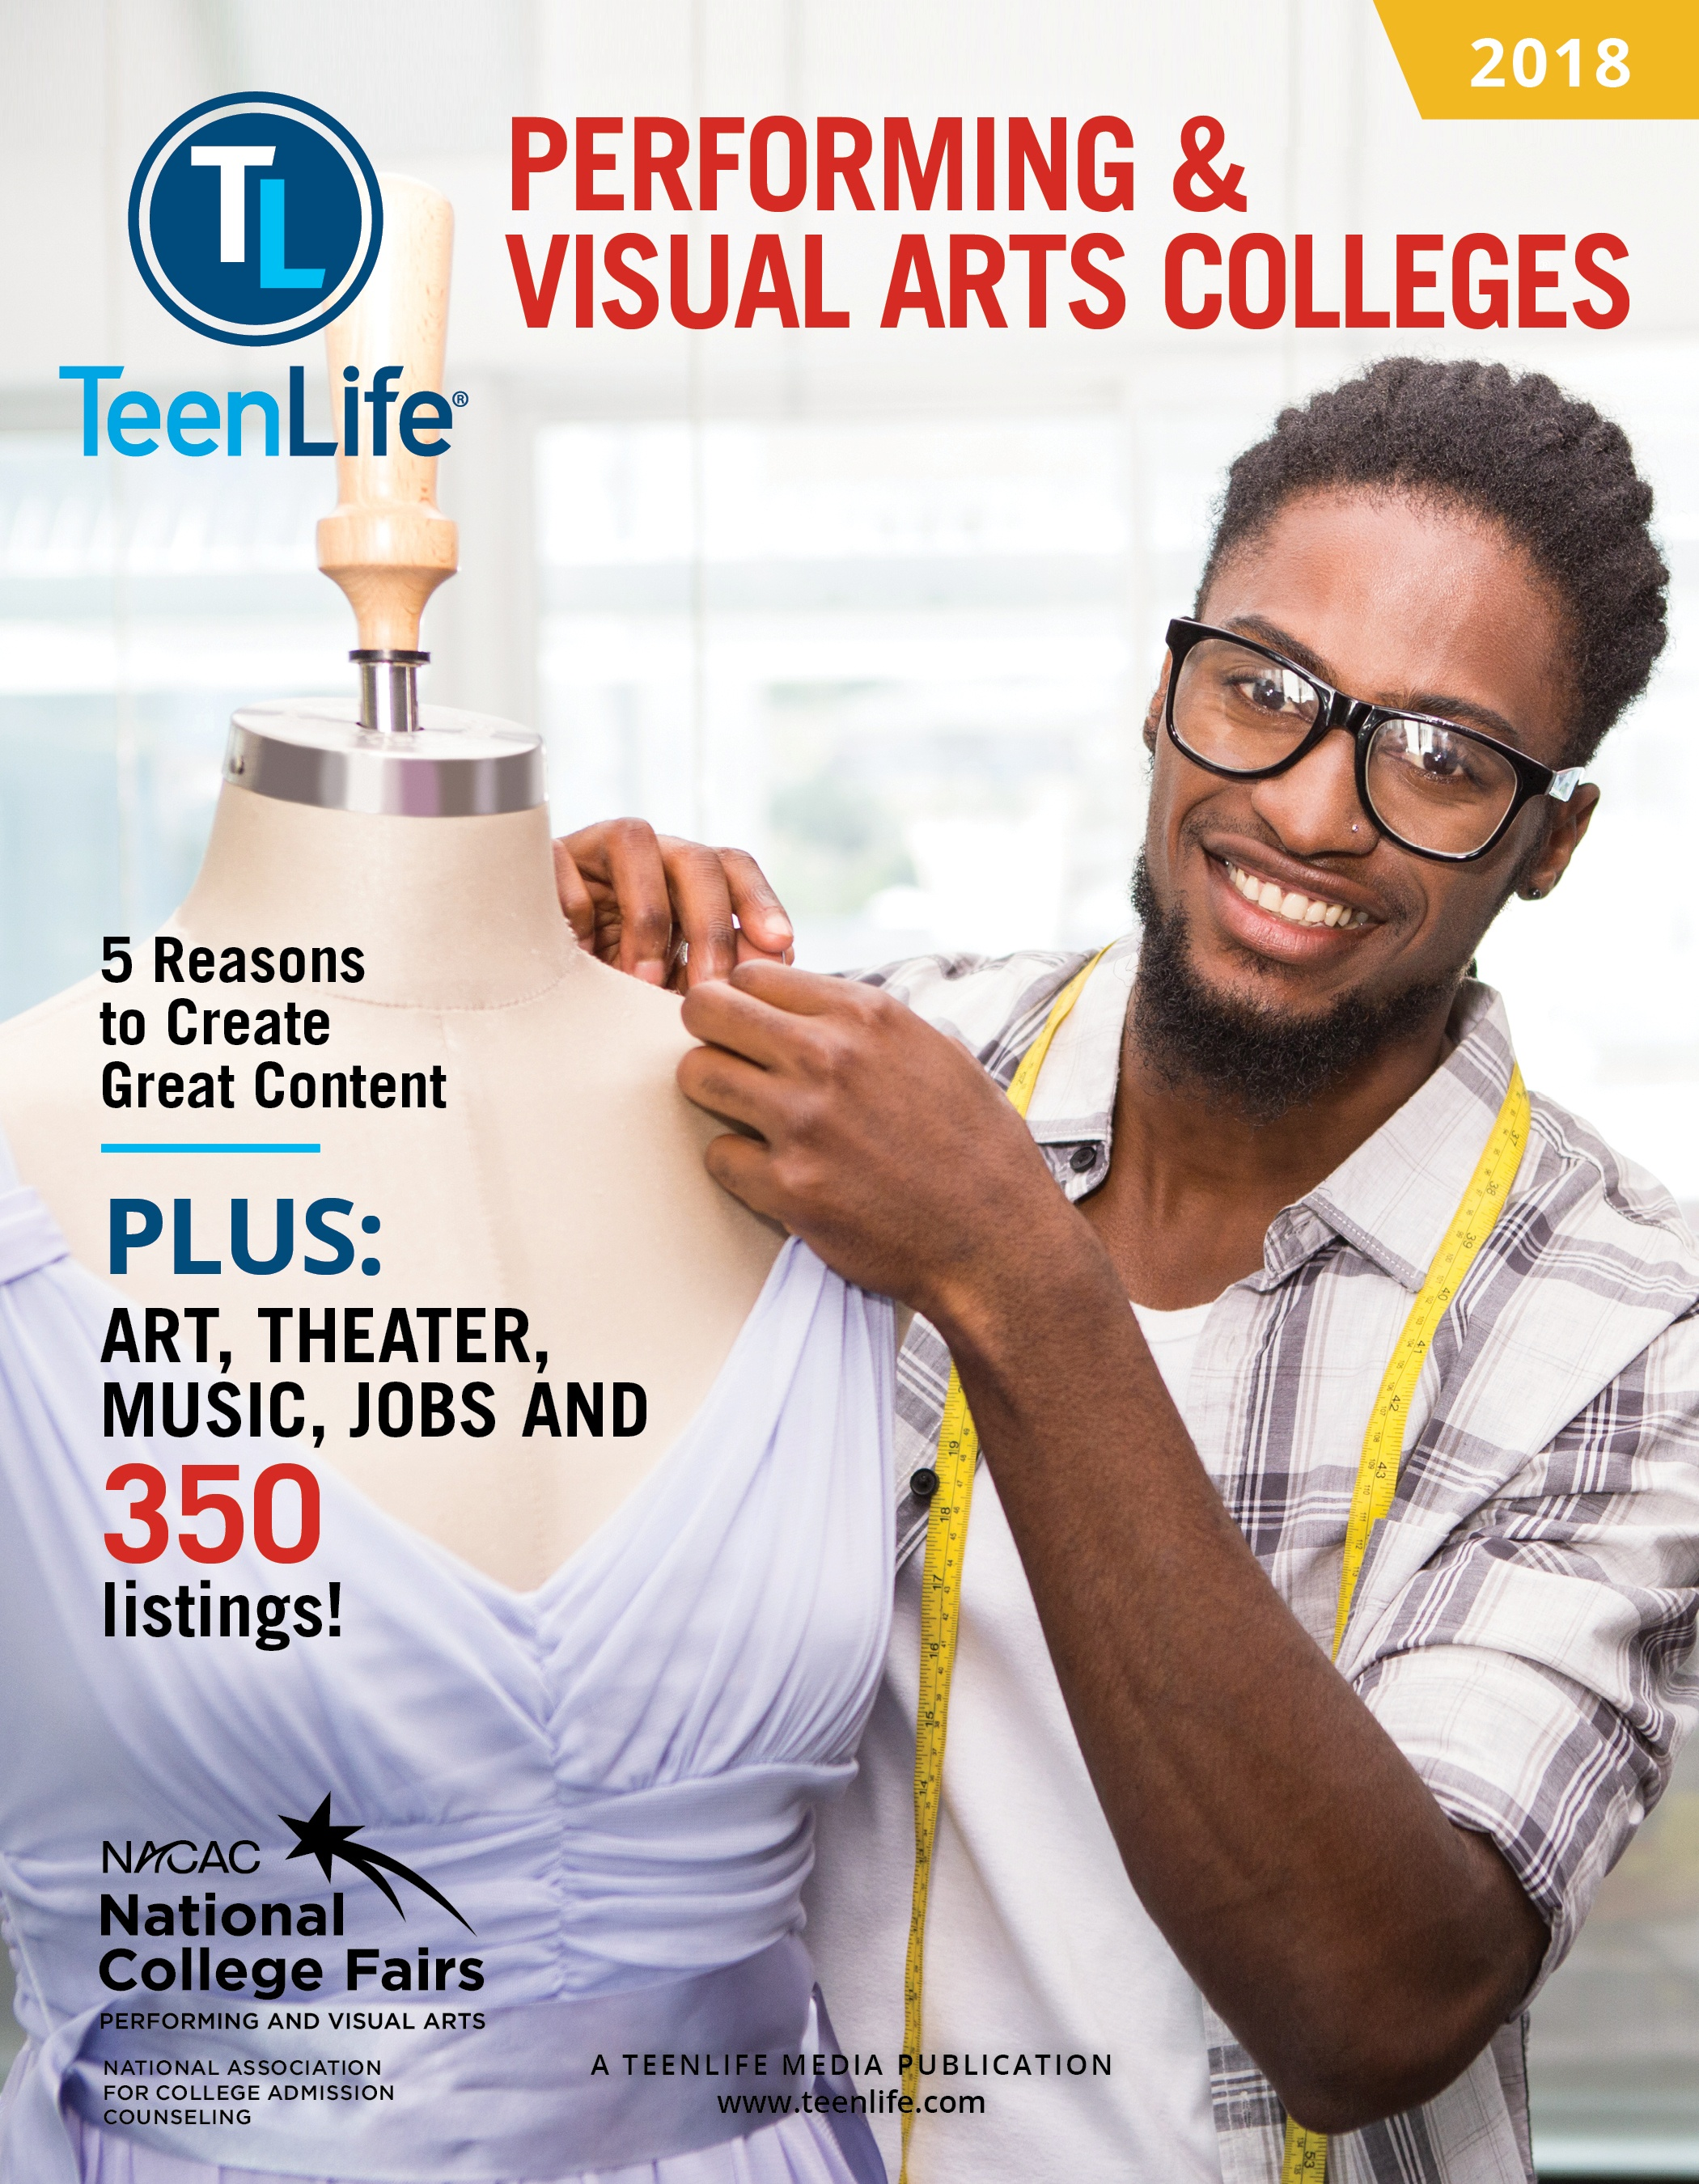 Guide to Performing & Visual Arts Colleges